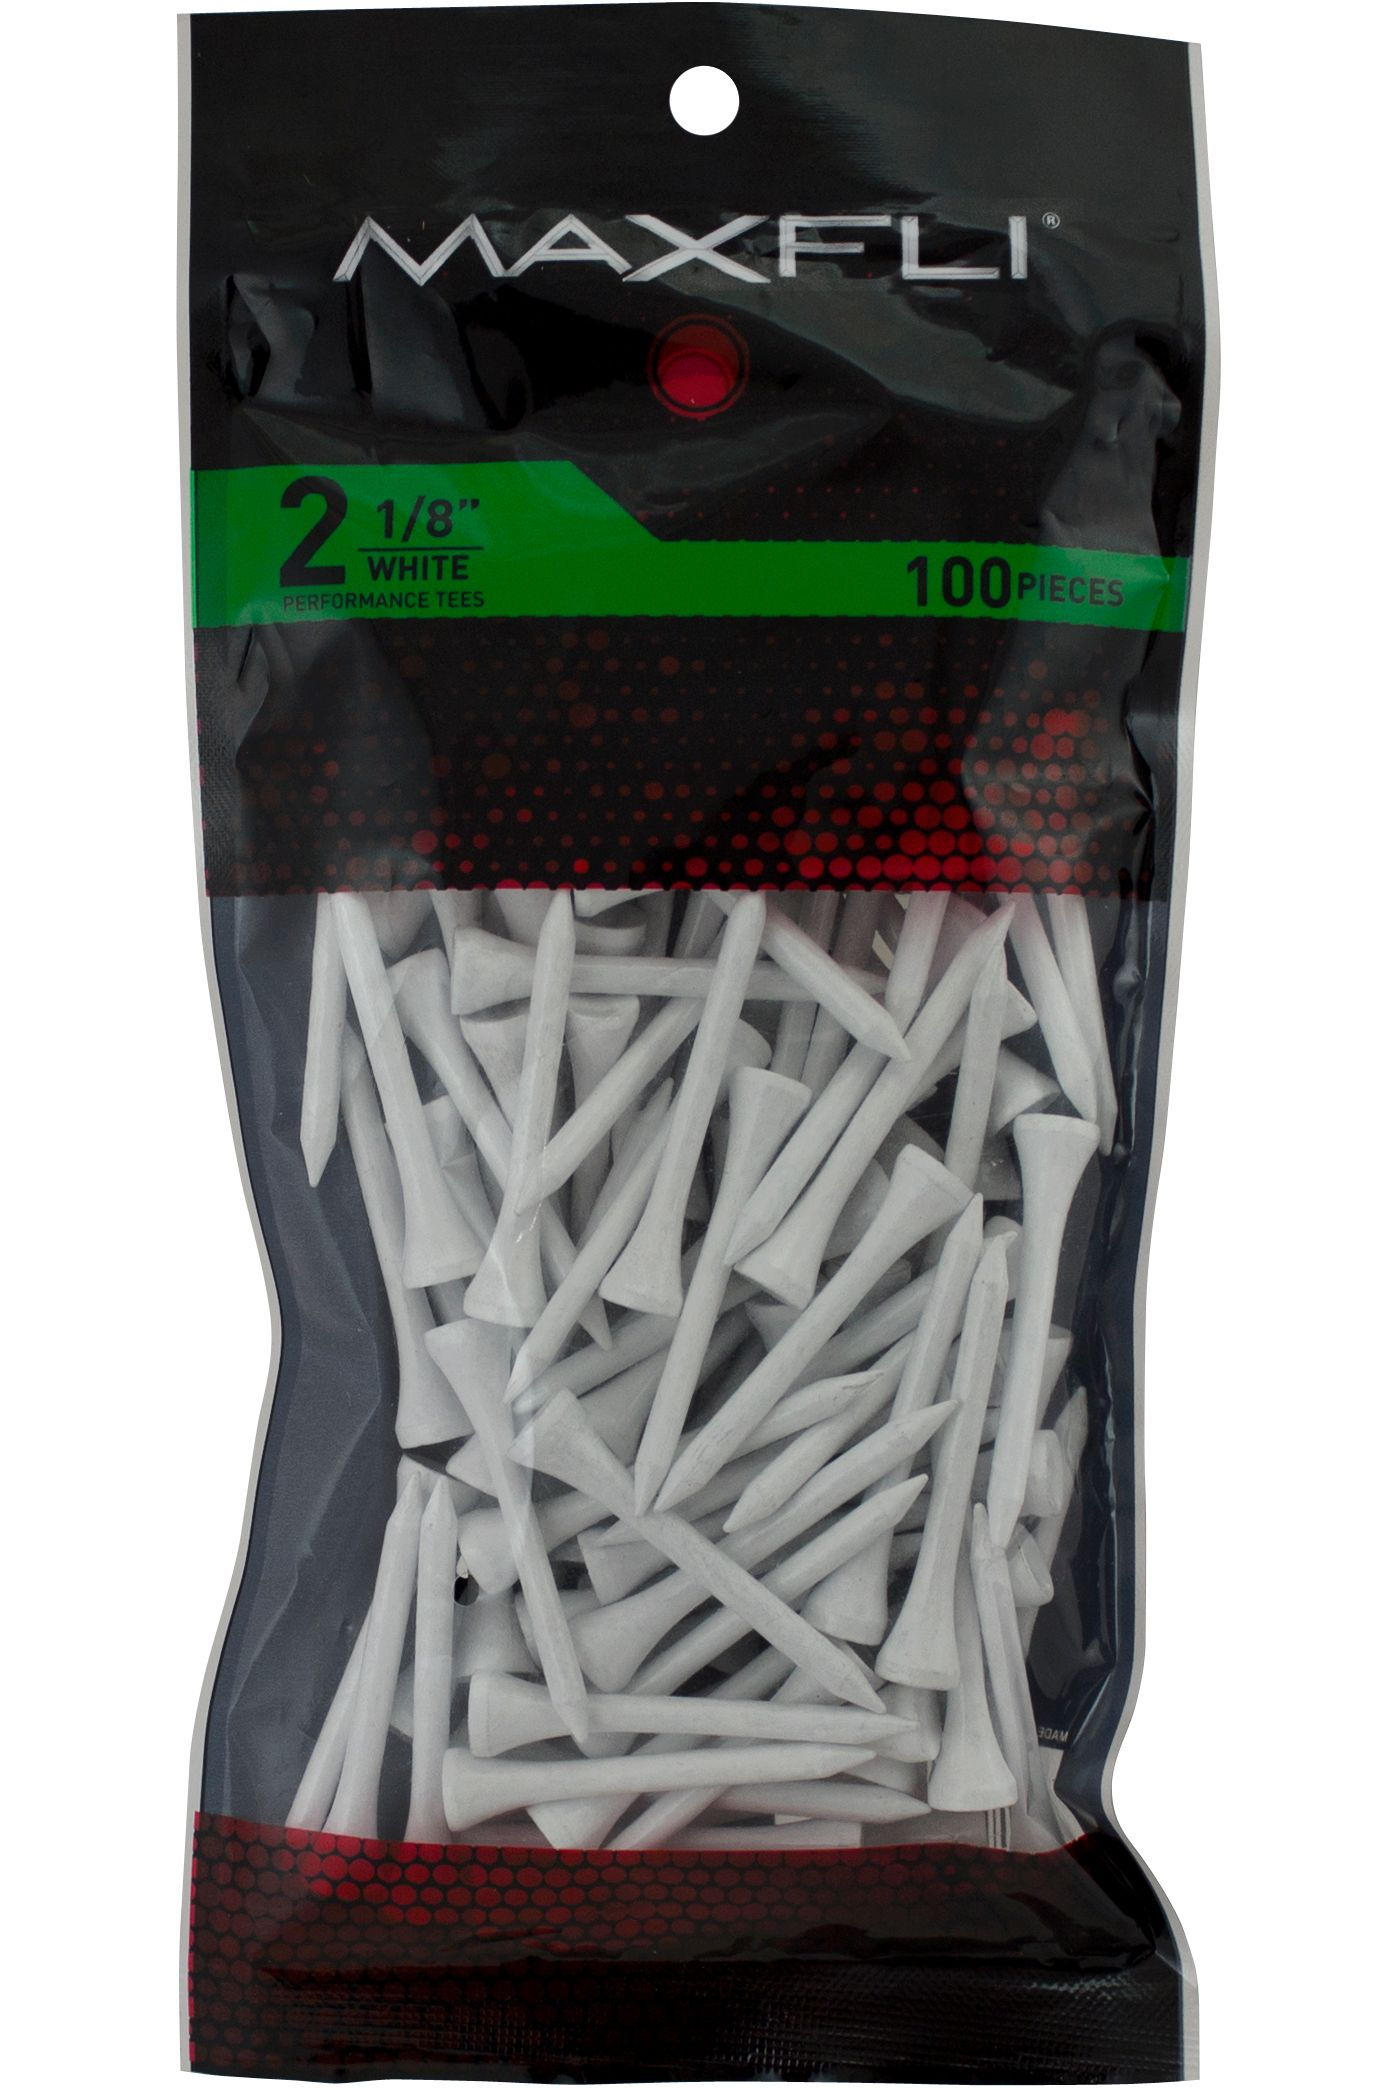 Maxfli 2 1/8'' White Golf Tees - 100 Pack